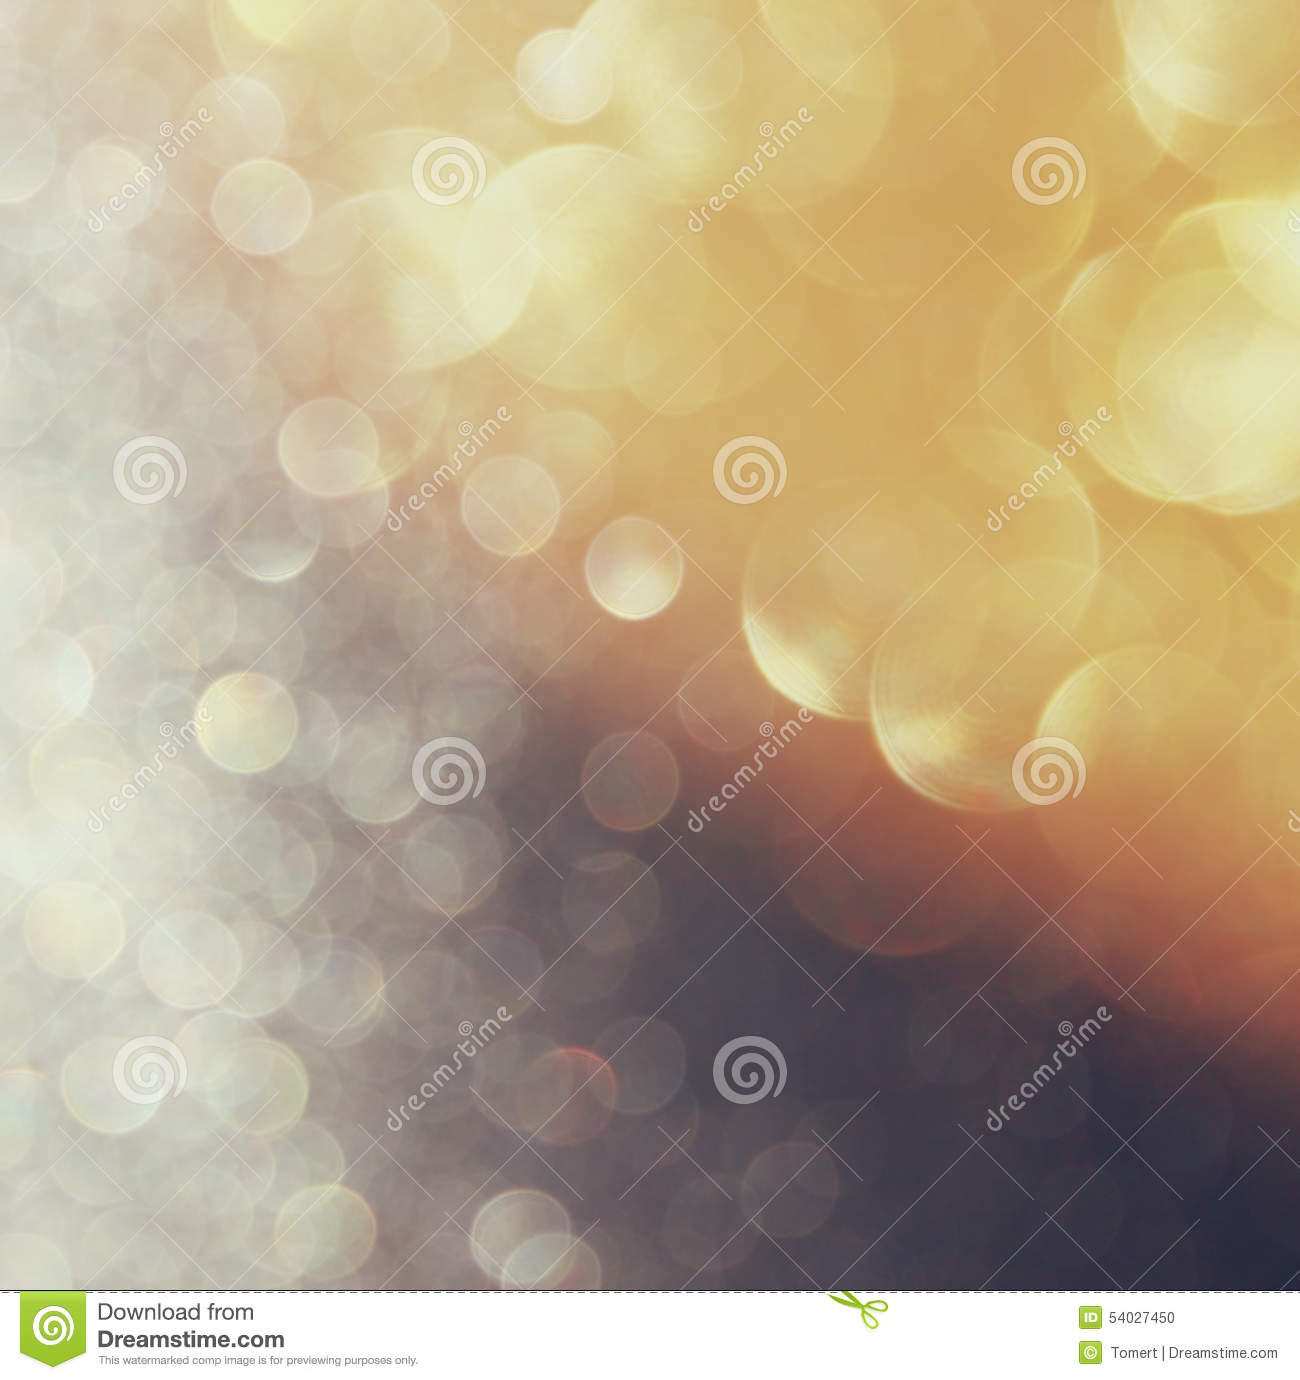 light gold vintage background - photo #42